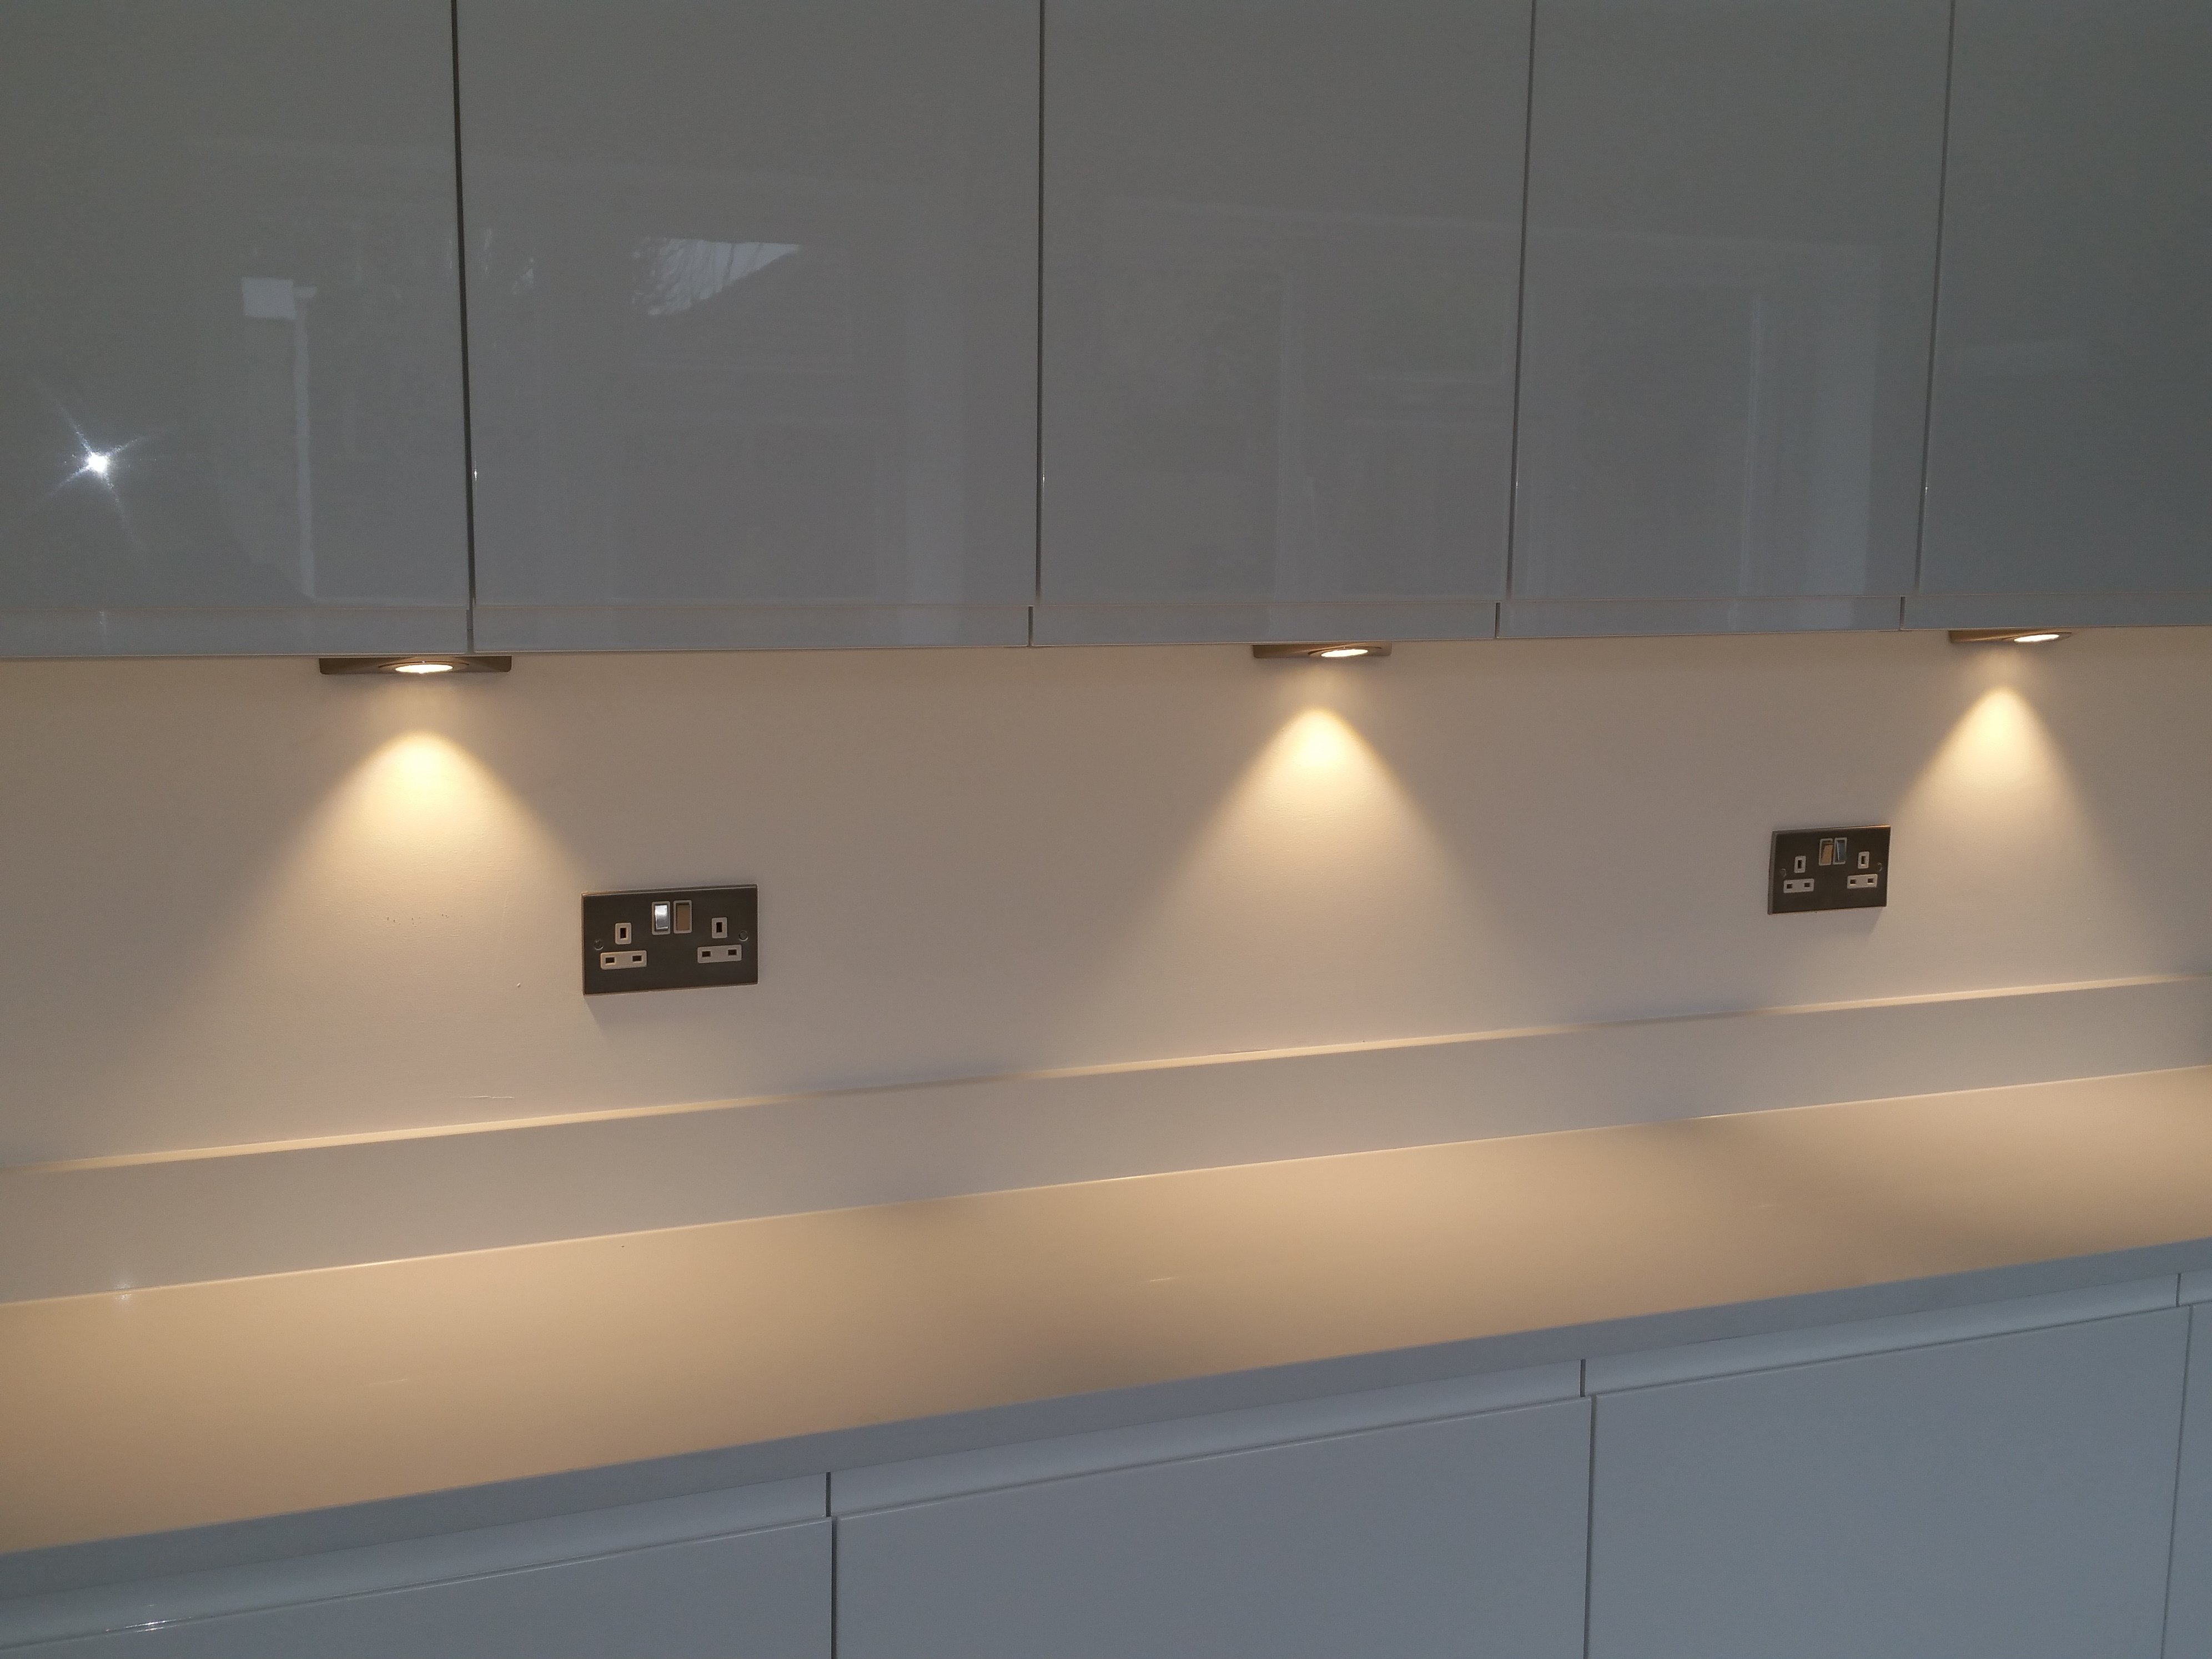 LED lighting installed by AJOB Electrical Ltd electrician in Leeds